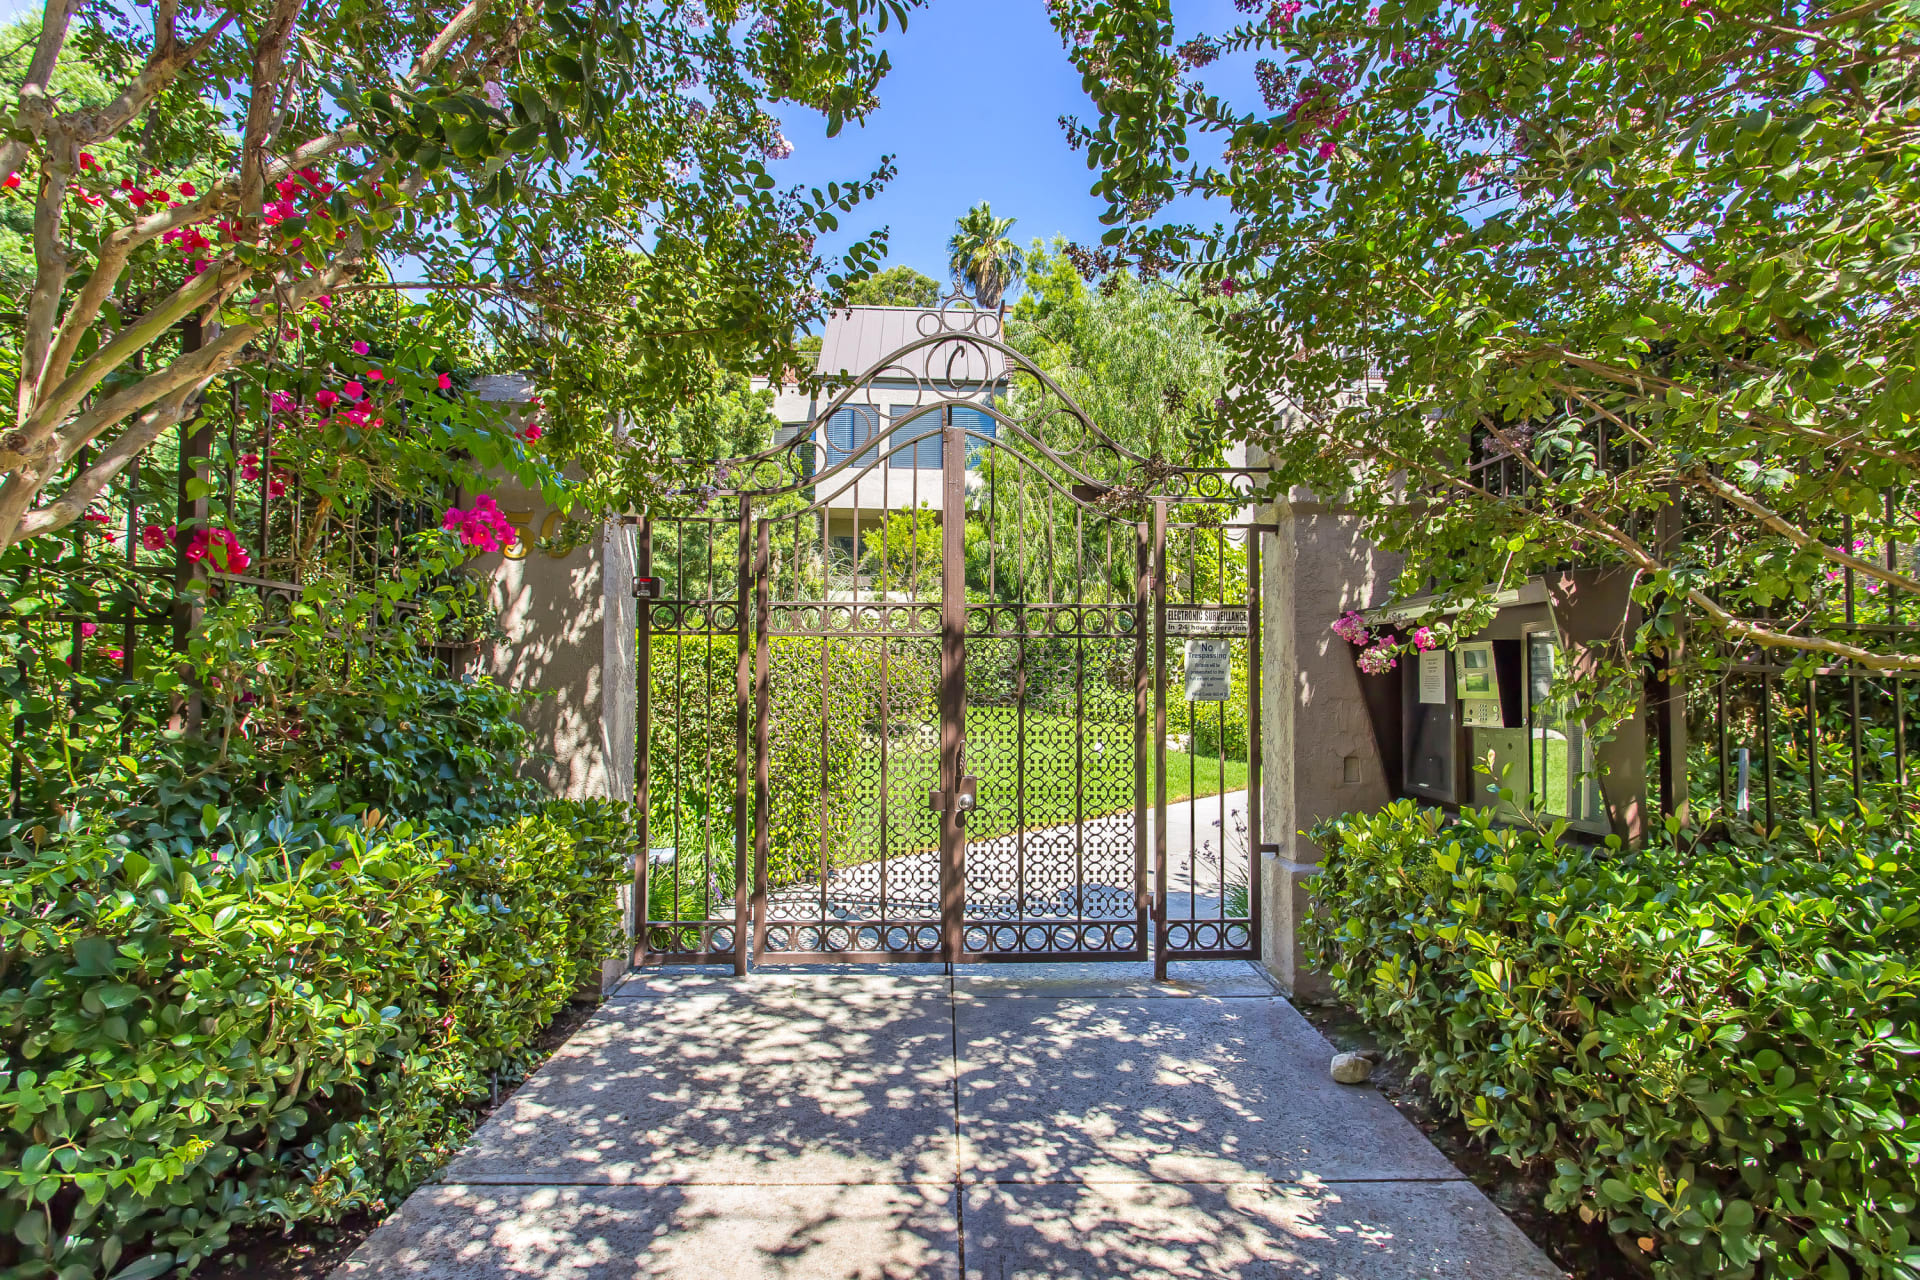 The Courtyards of West Hollywood photo